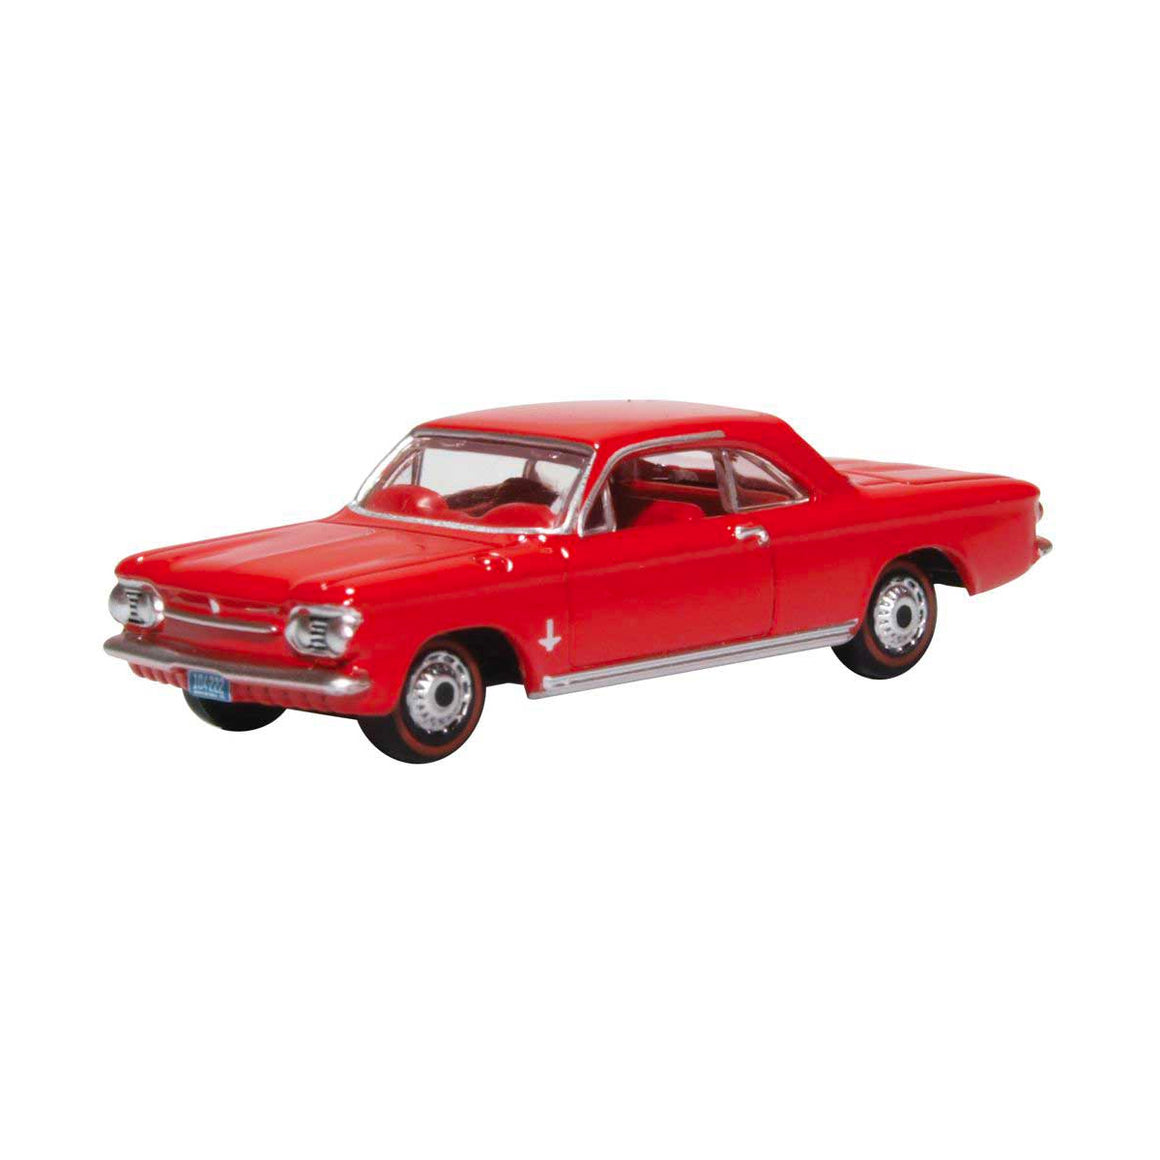 HO Scale: 1963 Chevrolet Corvair Coupe - Riverside Red